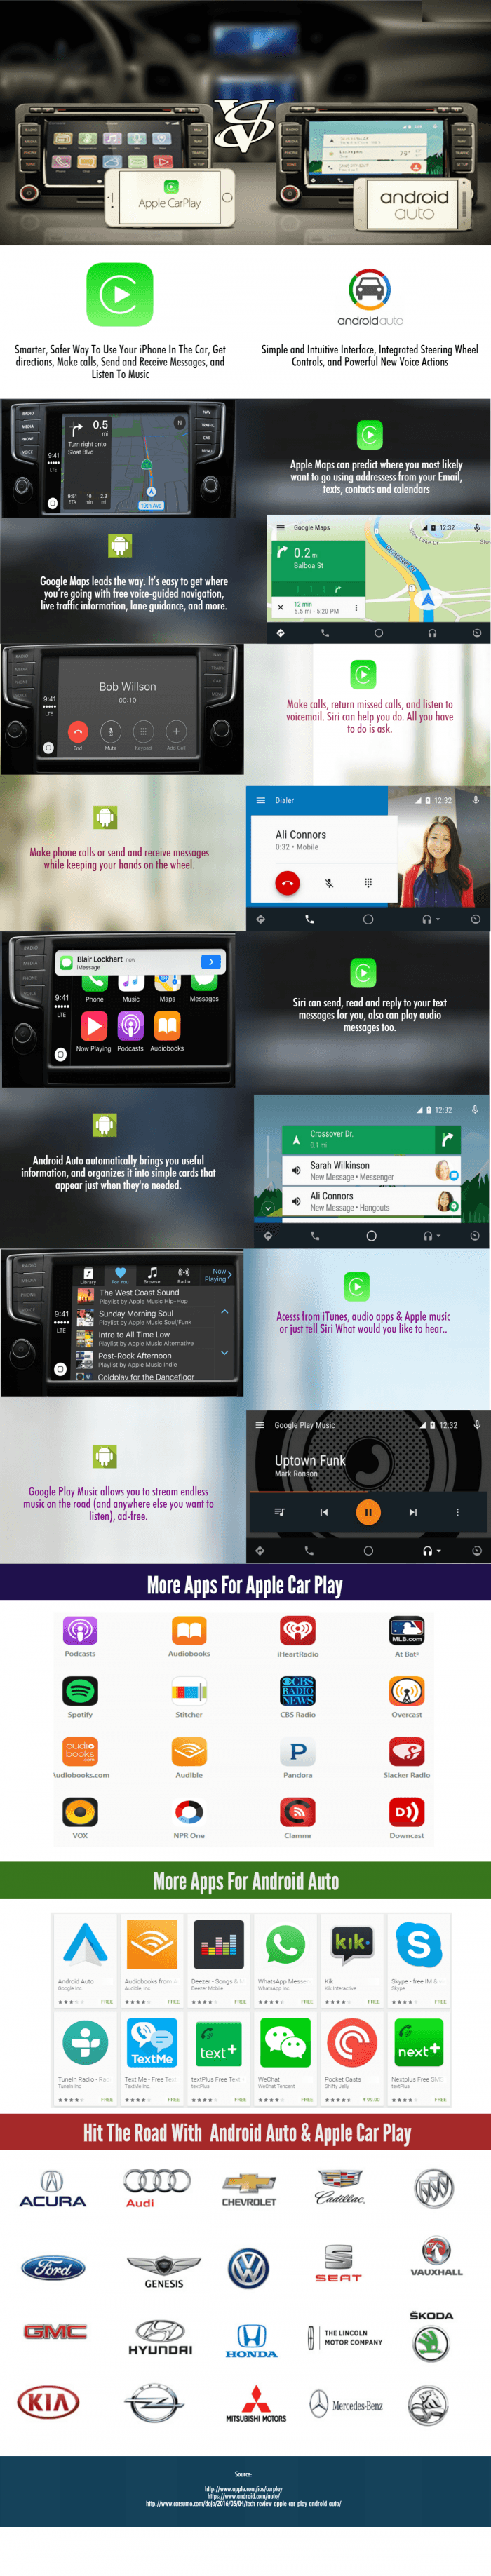 Apple-CarPlay-vs-Android-Auto-infographic-700x3673